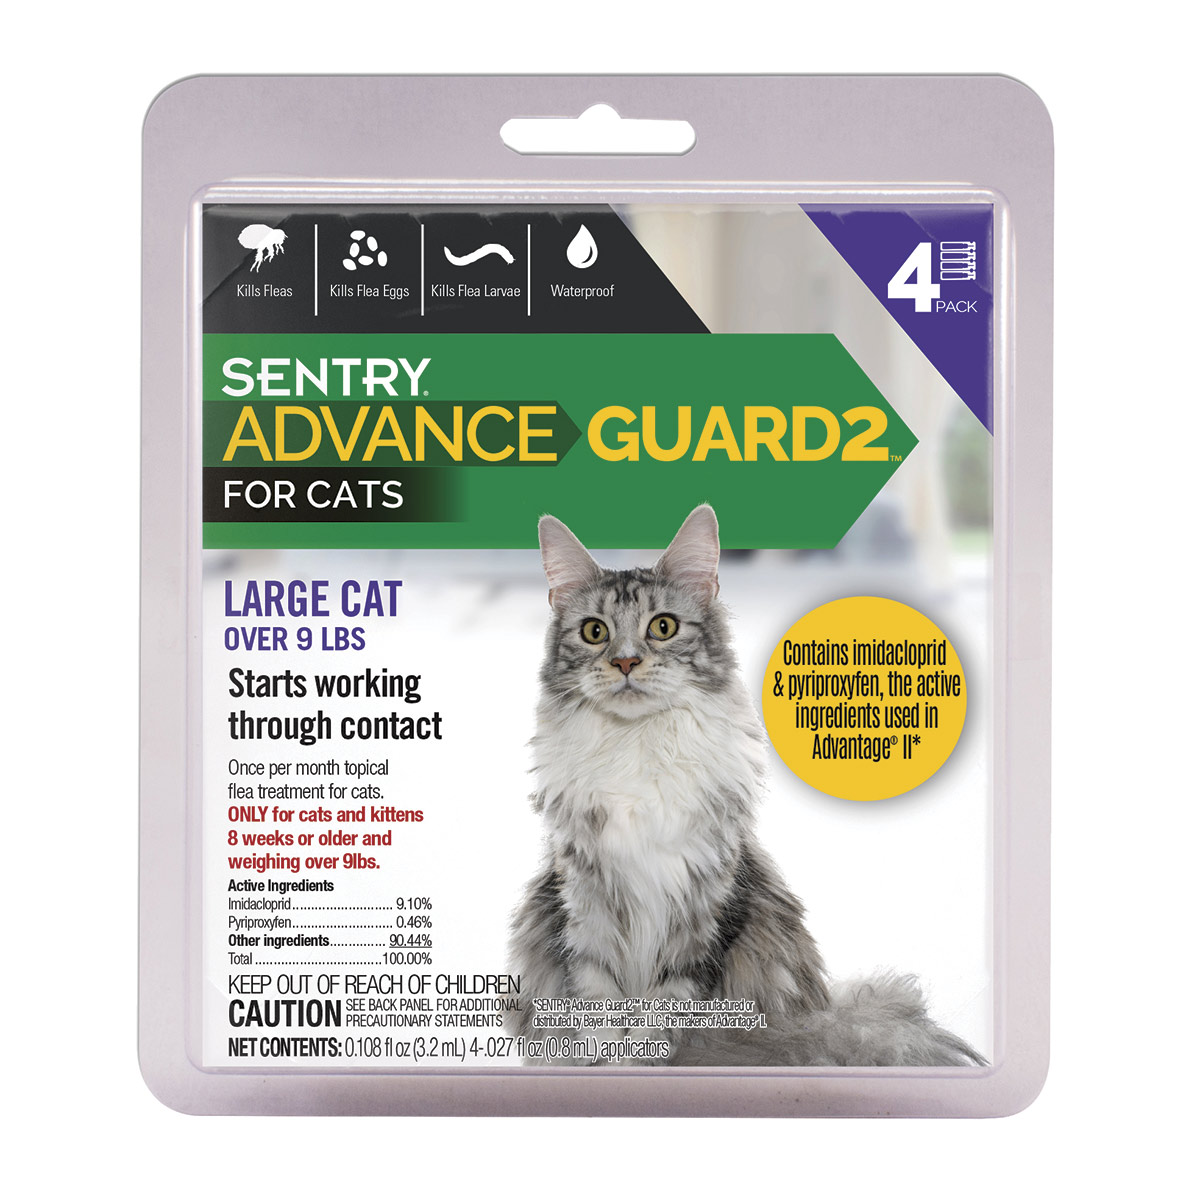 Sentry Advance Guard 2 Flea and Tick Treatment for Large Cat Over 9 lbs 4 Count